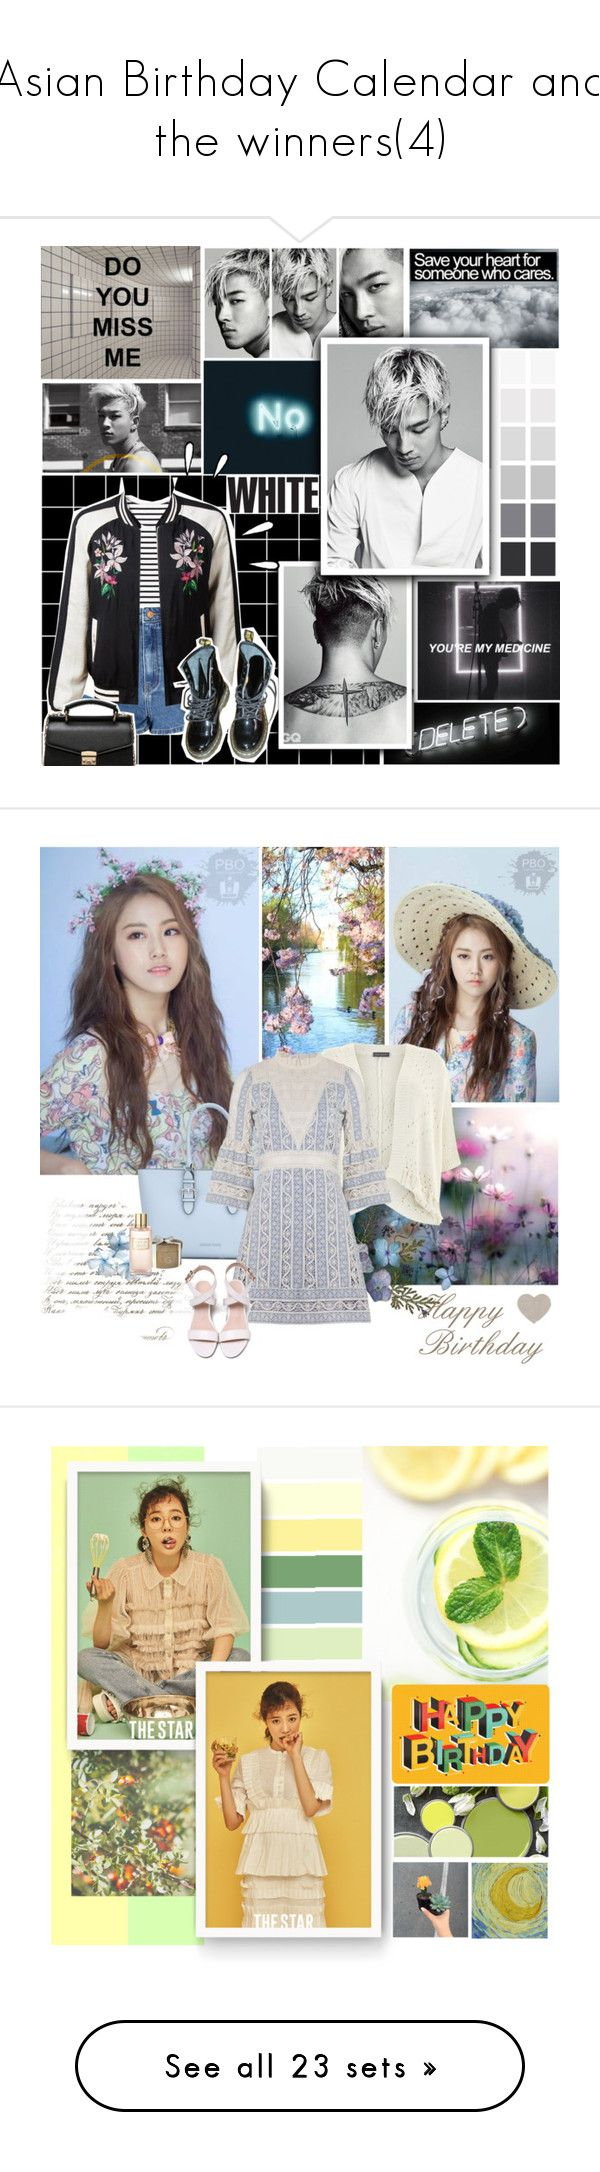 """""""Asian Birthday Calendar and the winners(4)"""" by rainie-minnie ❤ liked on Polyvore featuring art, Armani Jeans, Mint Velvet, Estée Lauder, Sea, New York, kpop, contestentry, 4minute, girlsgroup and MICHAEL Michael Kors"""